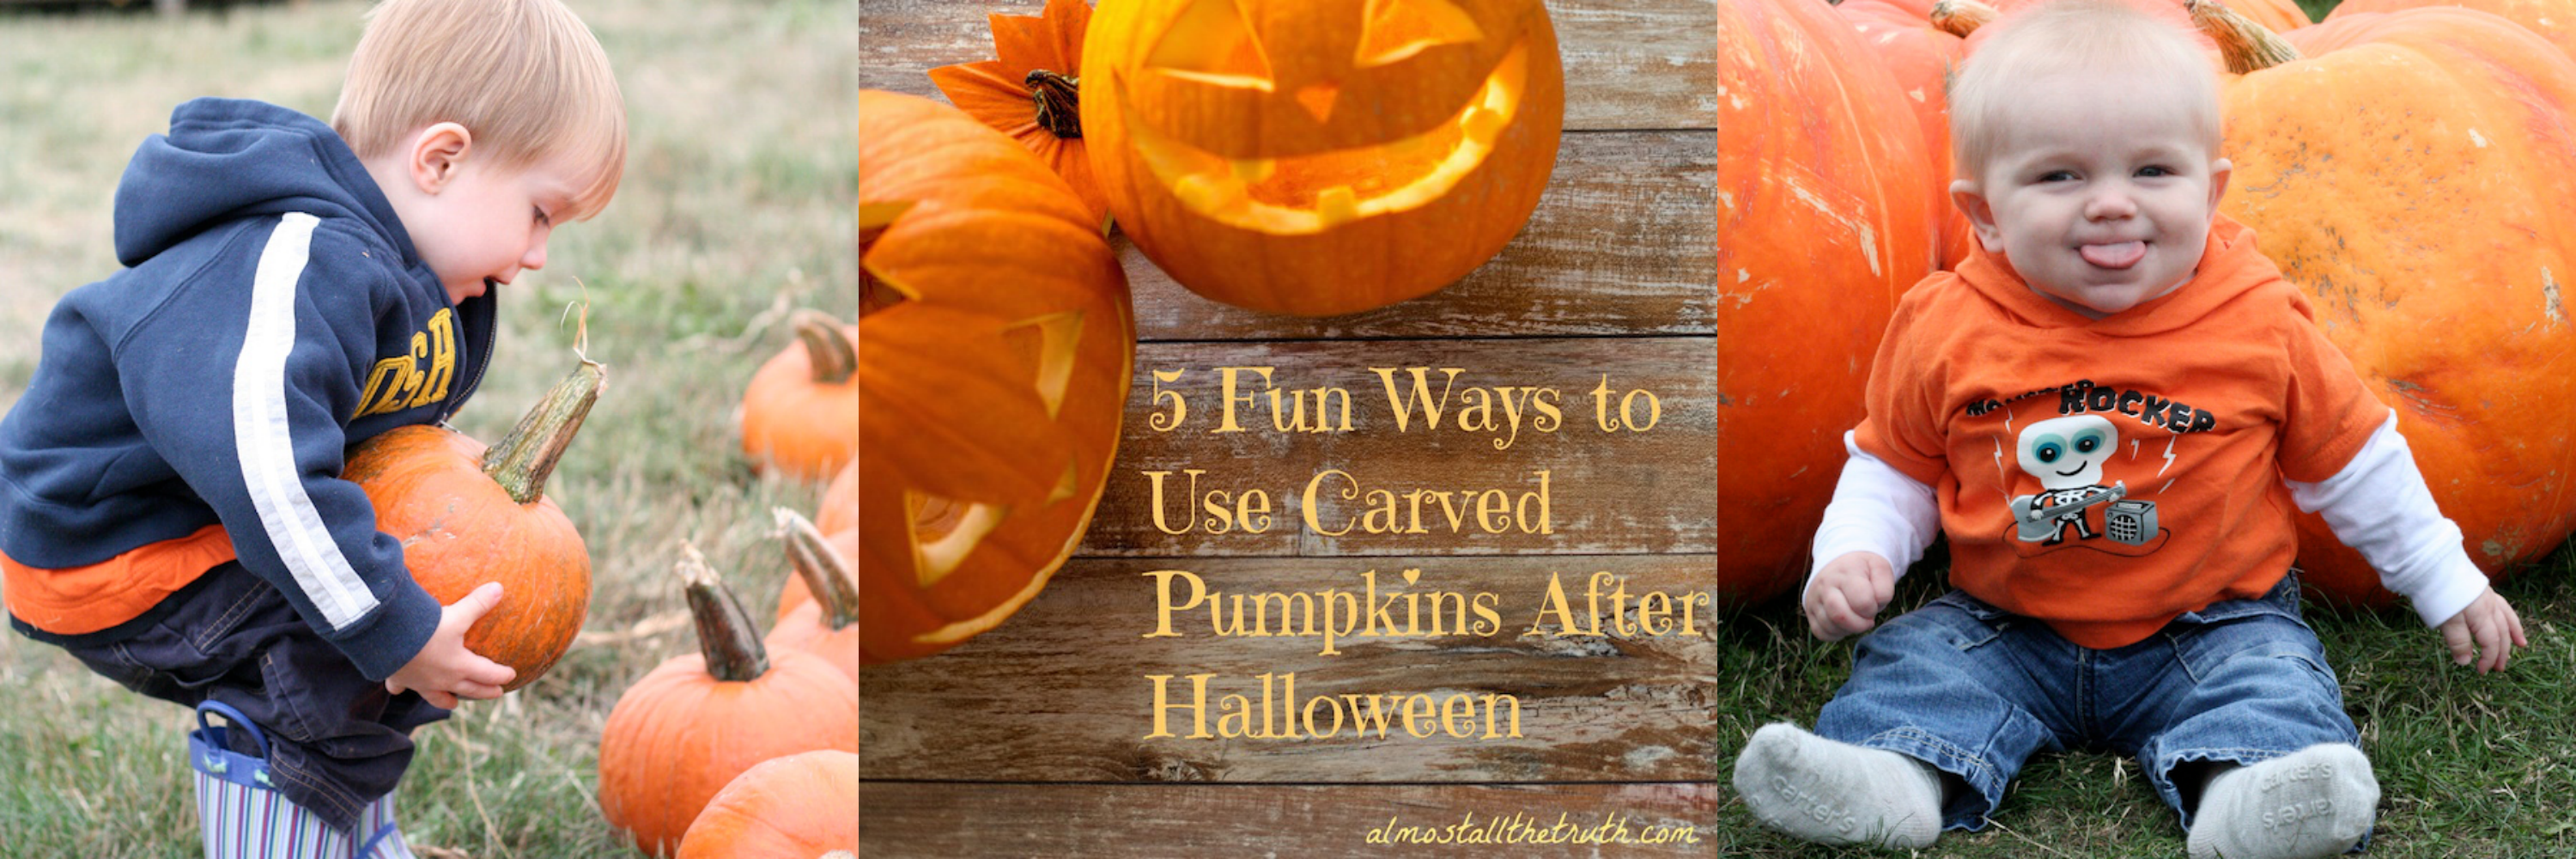 5 Fun Ways to Use Carved Pumpkins After Halloween